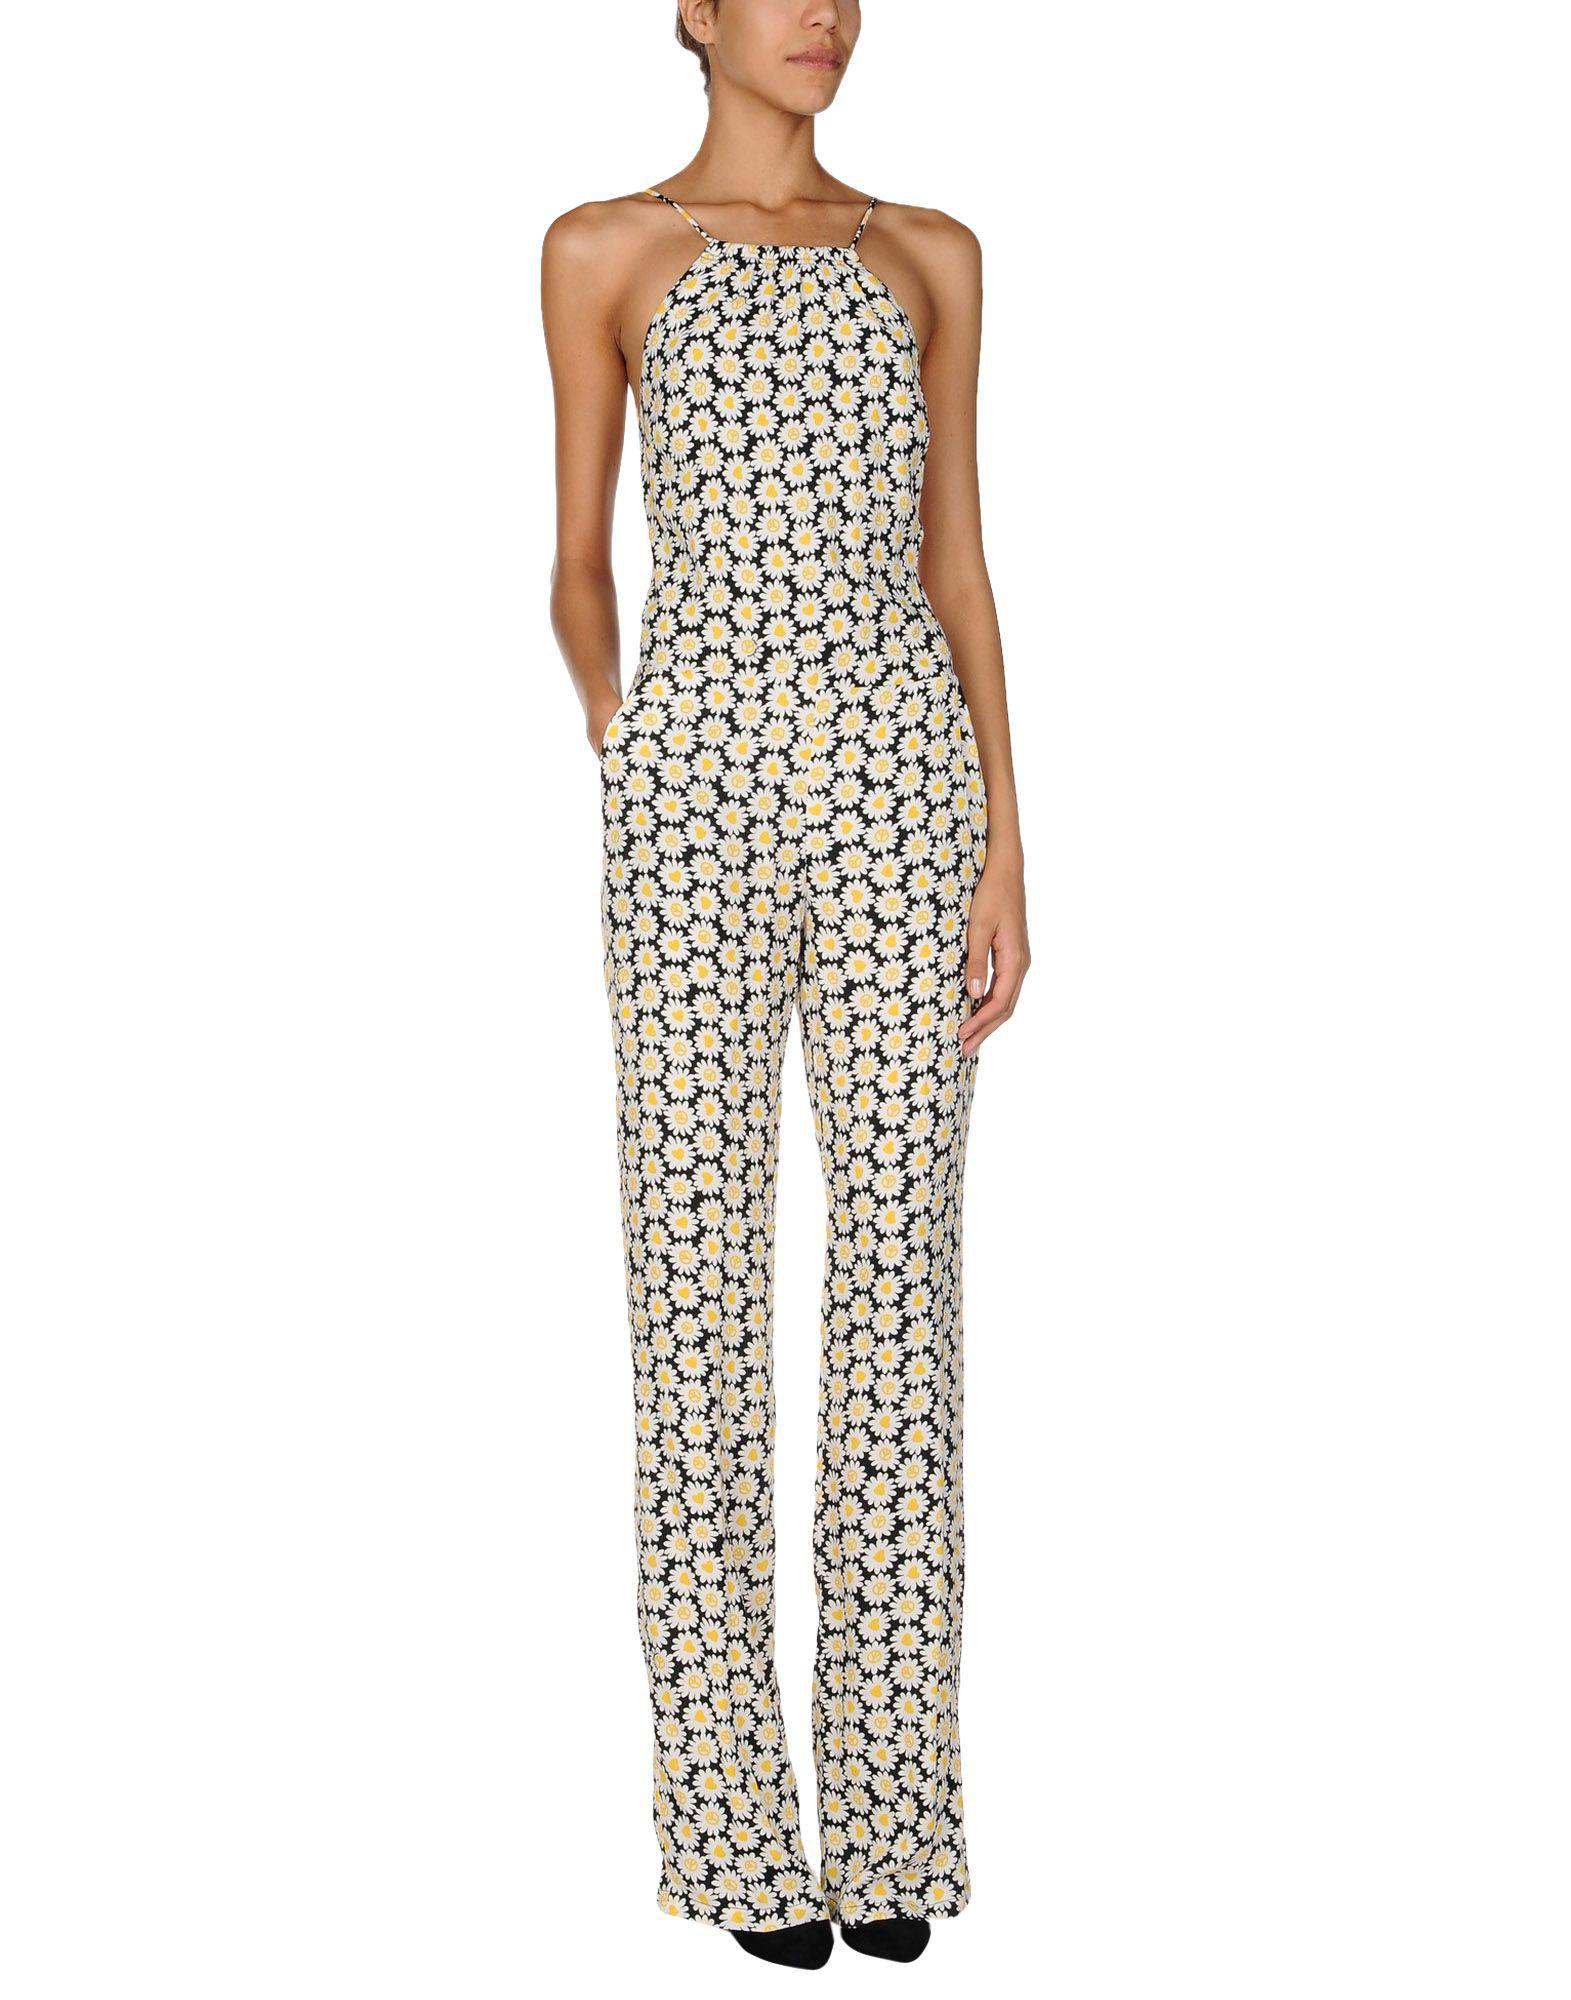 4bcd46e95dc8 Love Moschino Jumpsuit in White - Lyst